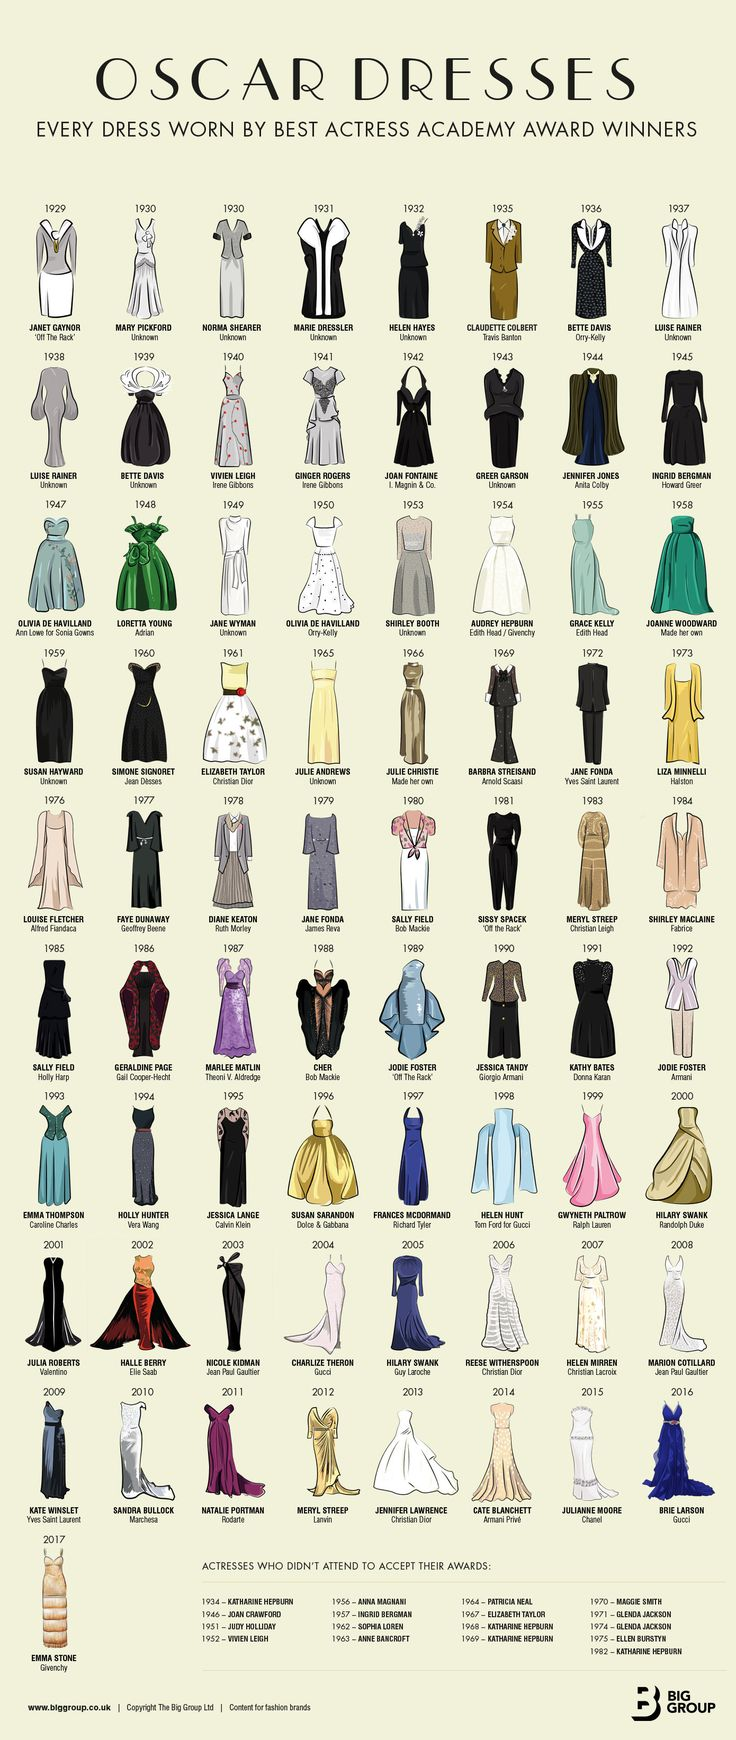 Here's A Cool Illustration Of Every Gown Worn By A Best Actress Oscar Winner